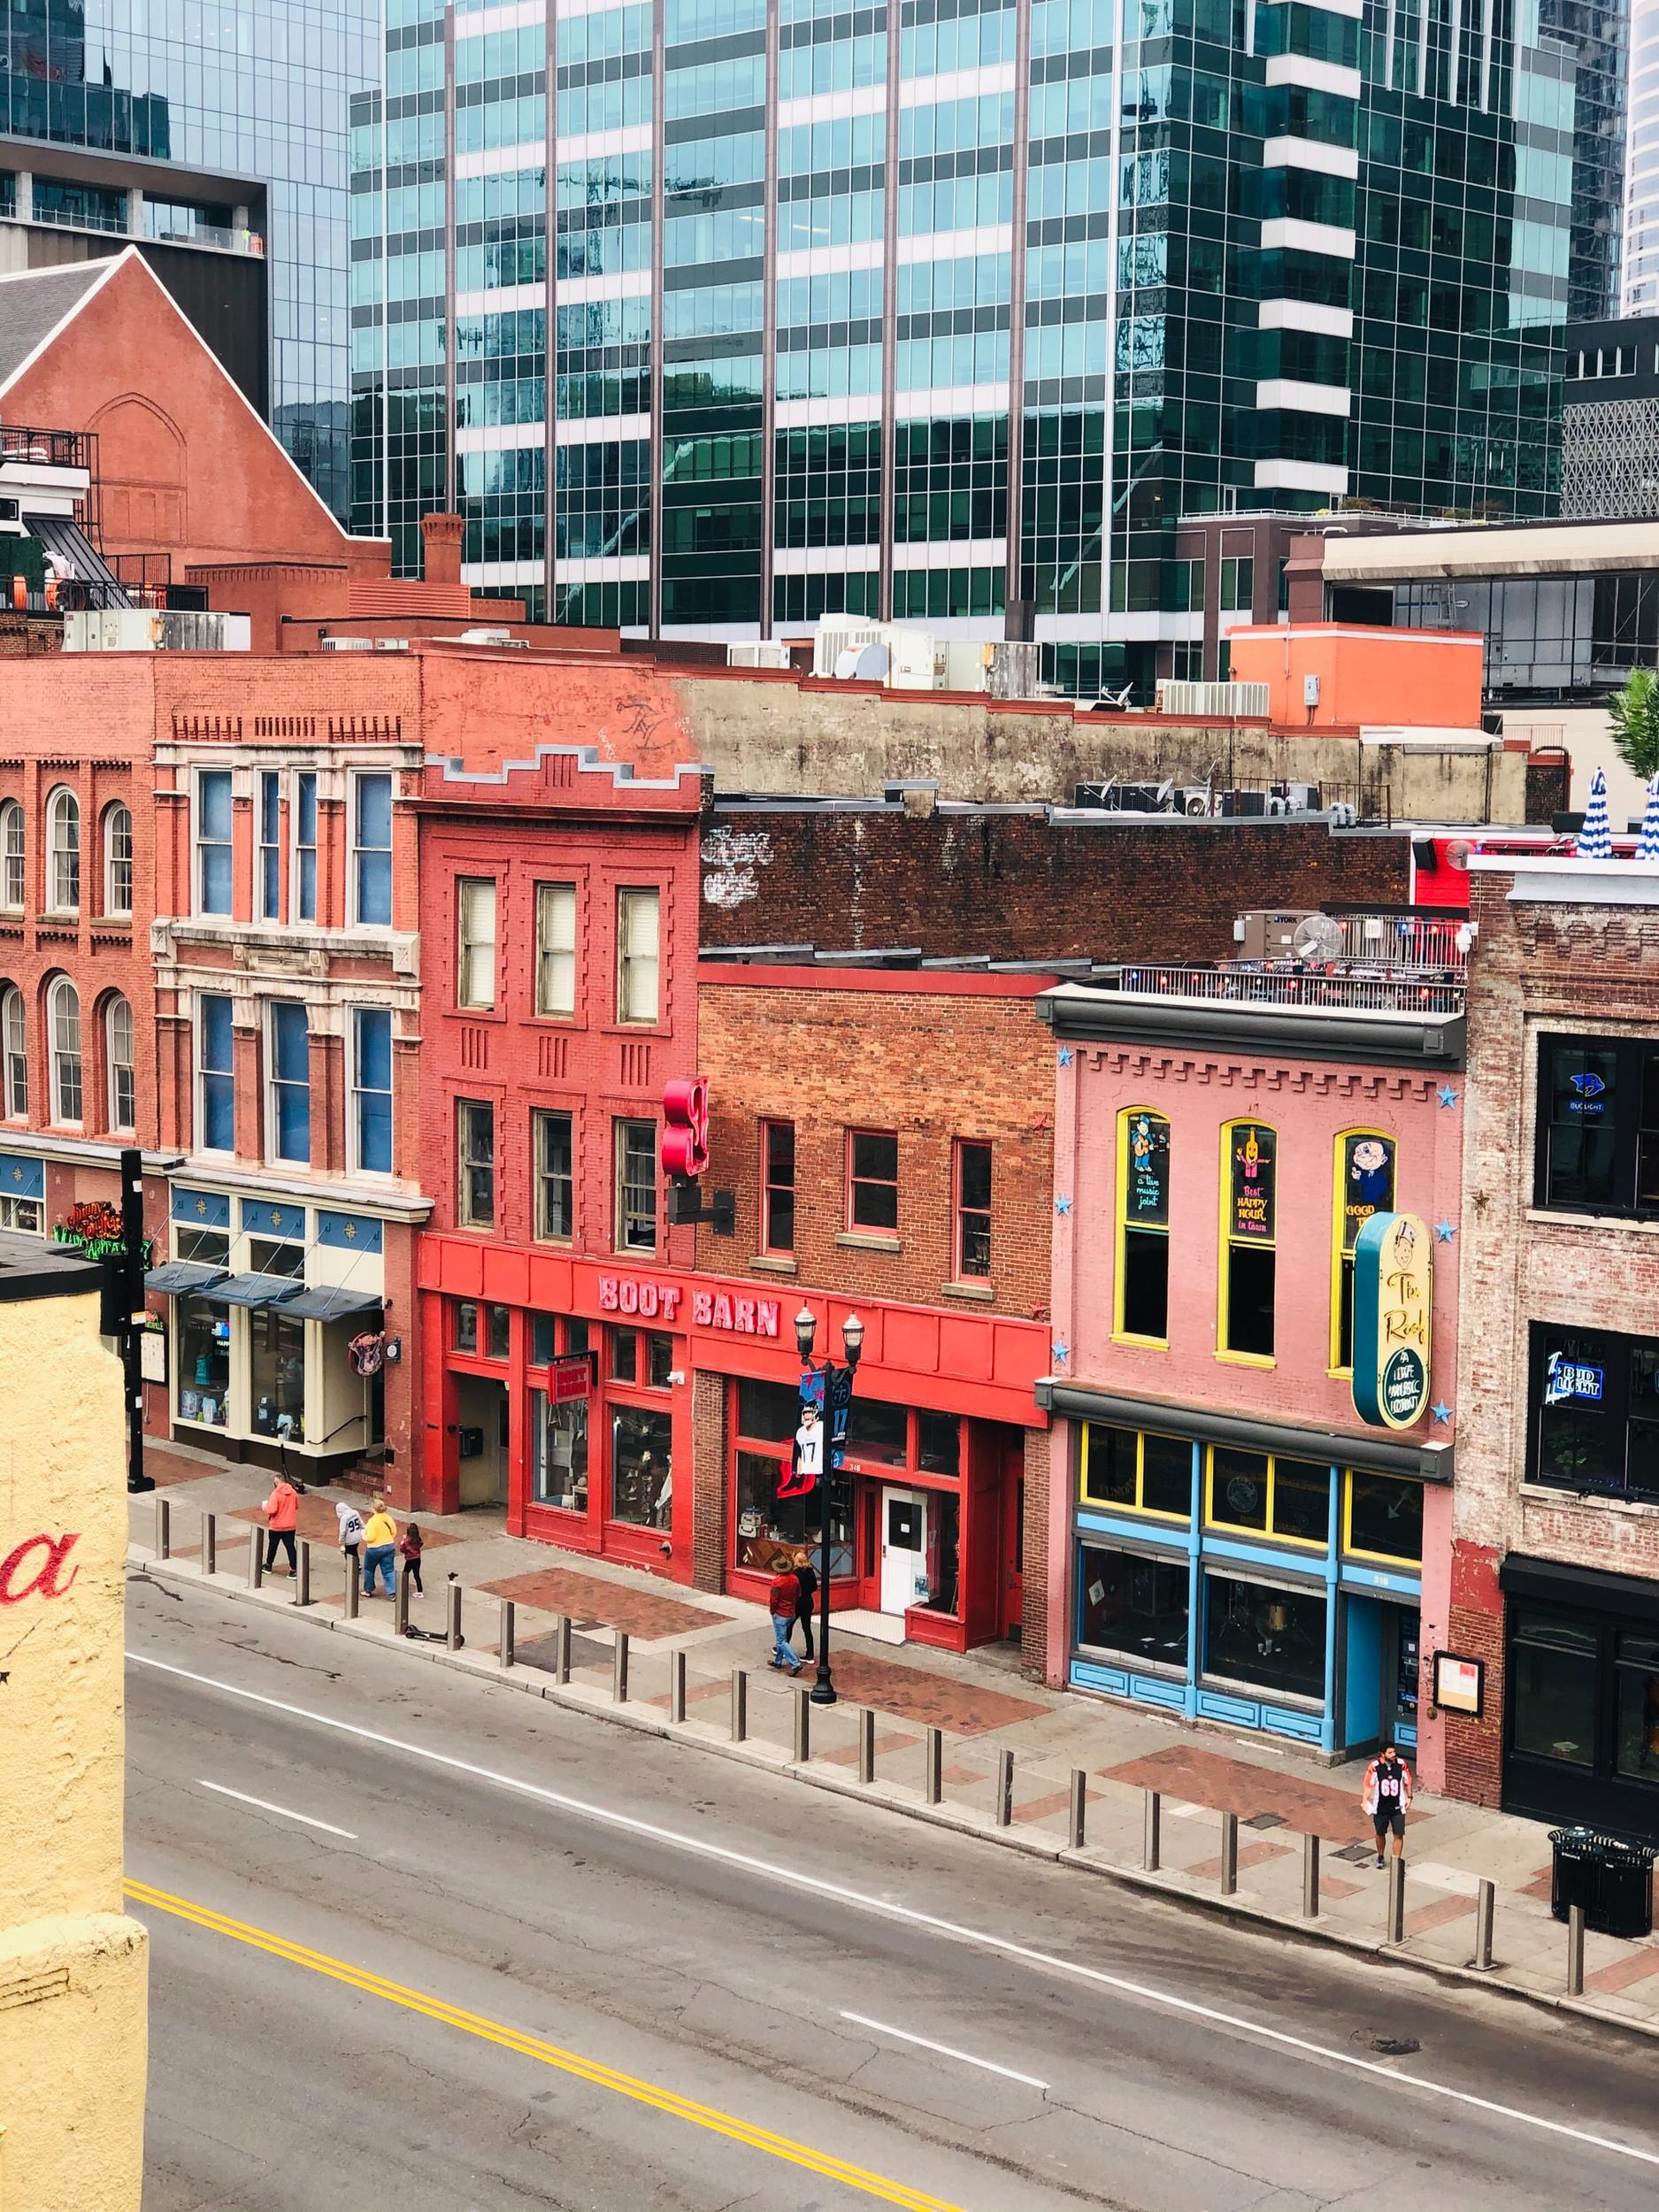 21 Unforgettable Free Things to Do in Nashville